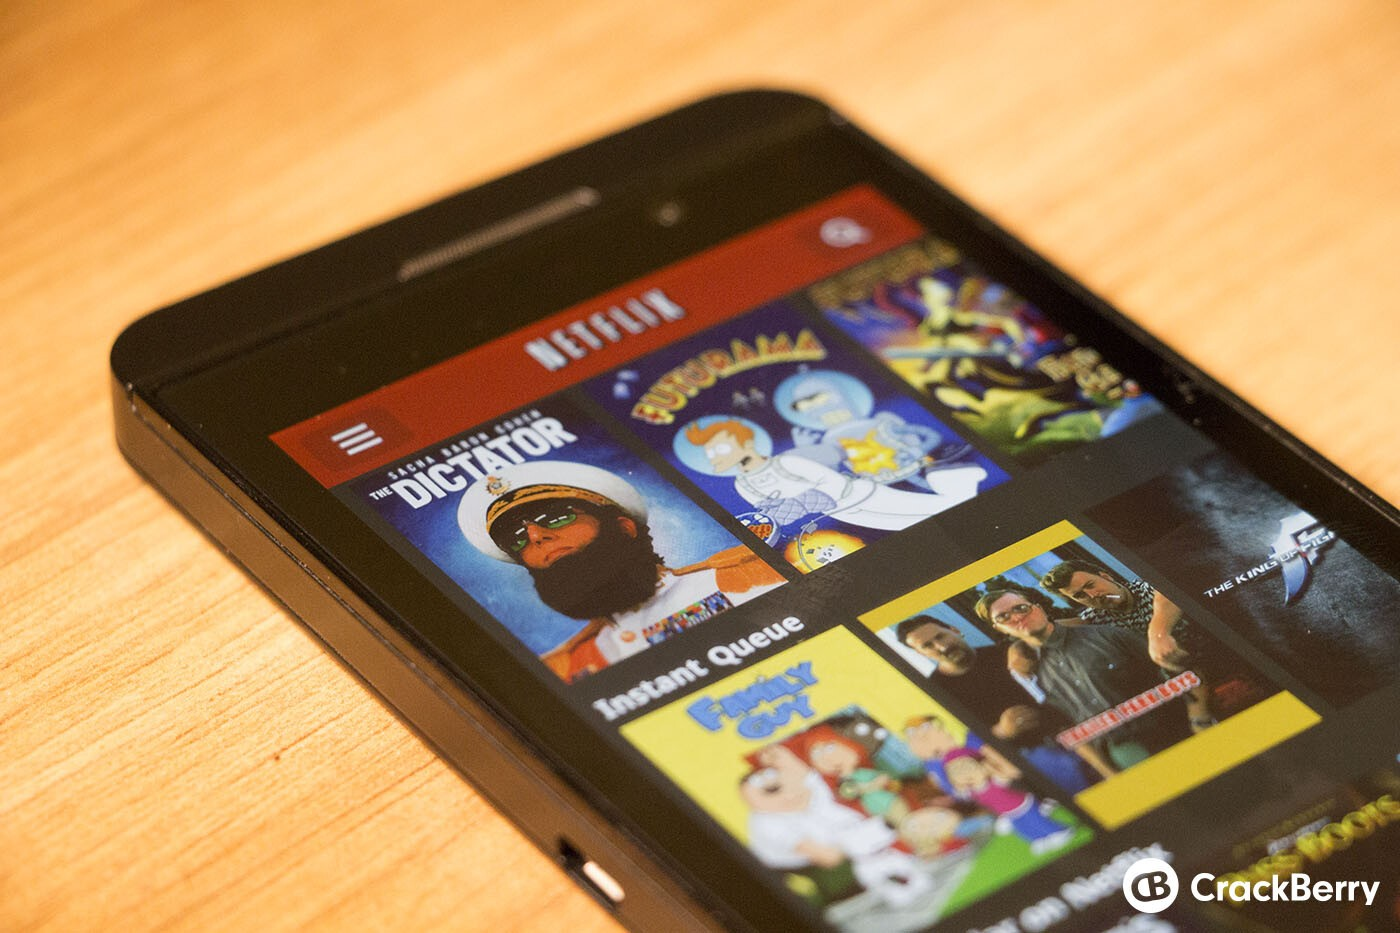 Download Netflix for your BlackBerry Z10